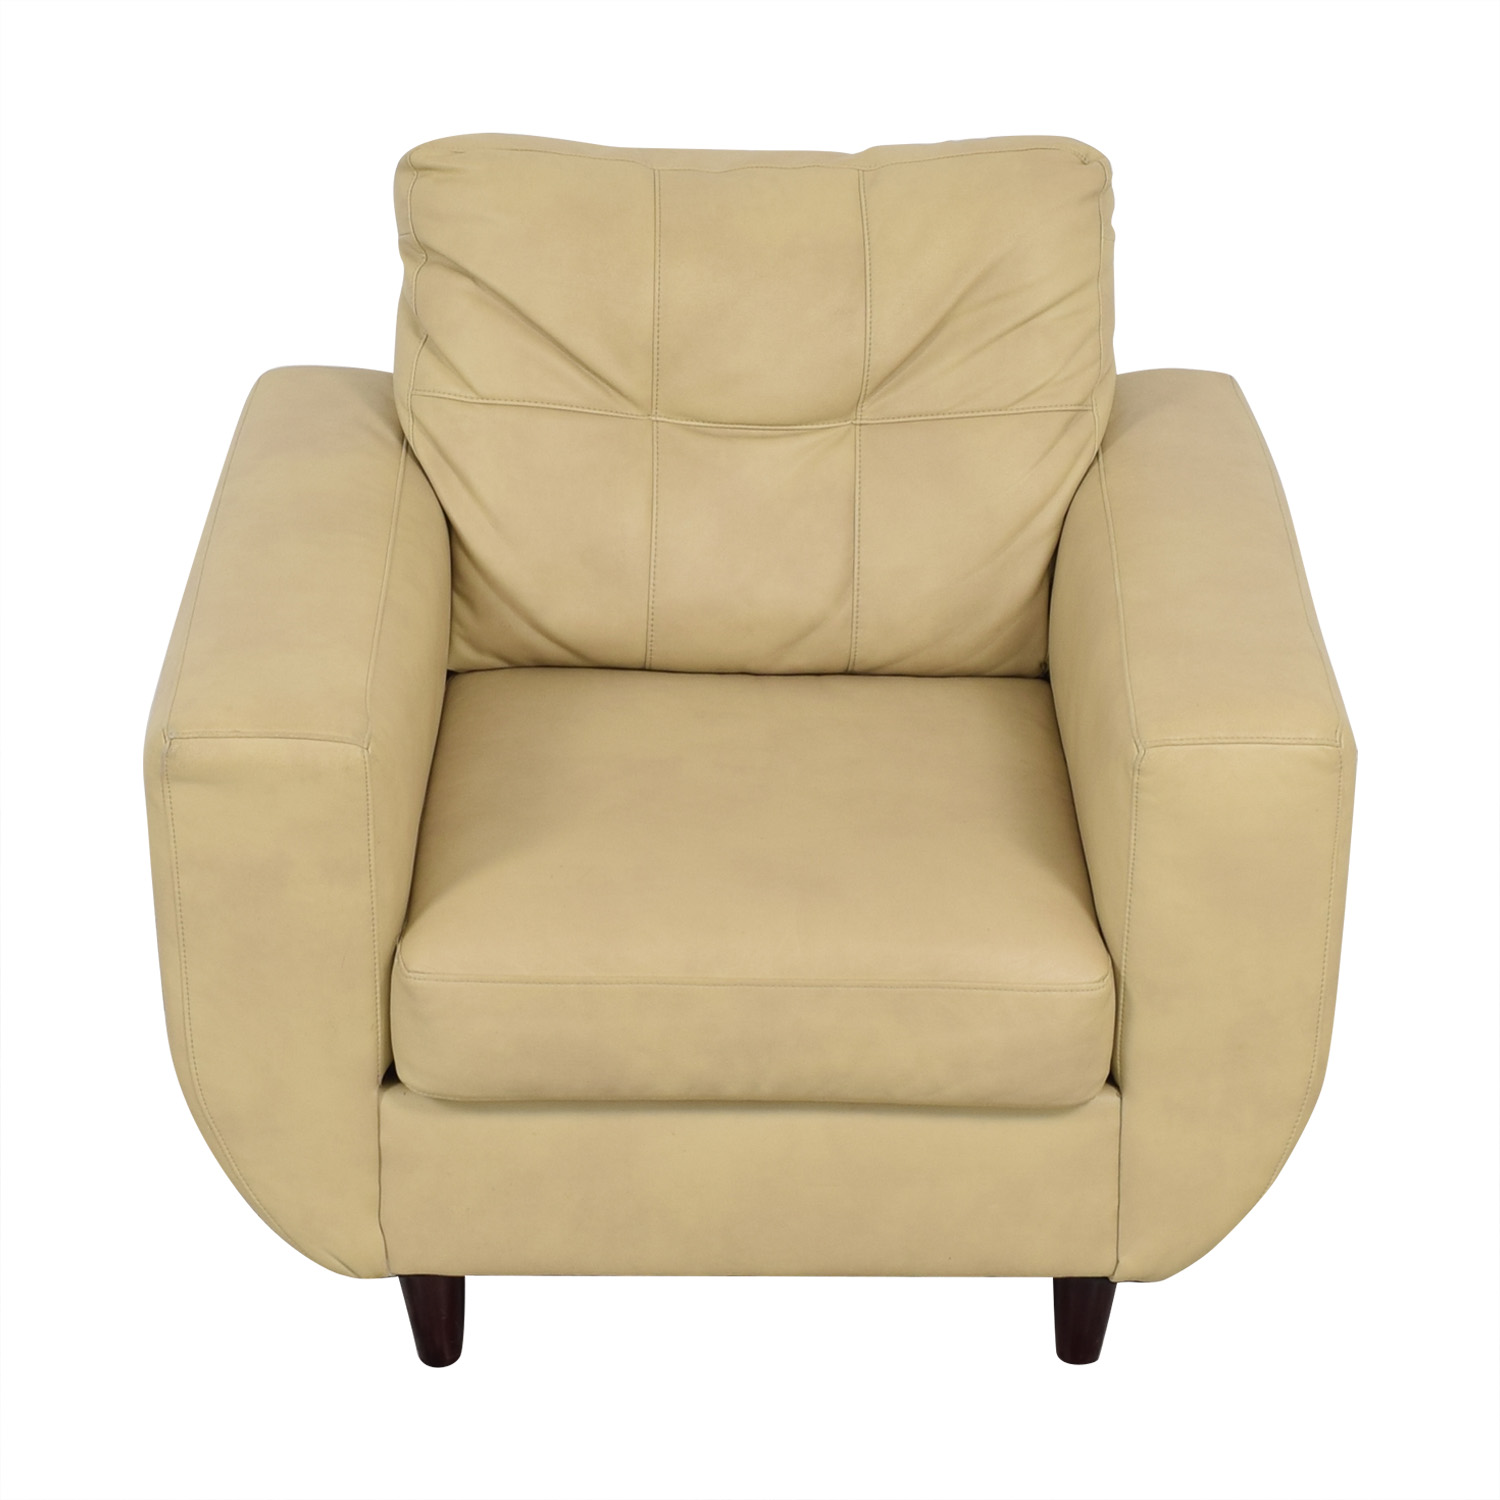 buy HomeGoods HomeGoods Cushioned Armchair online